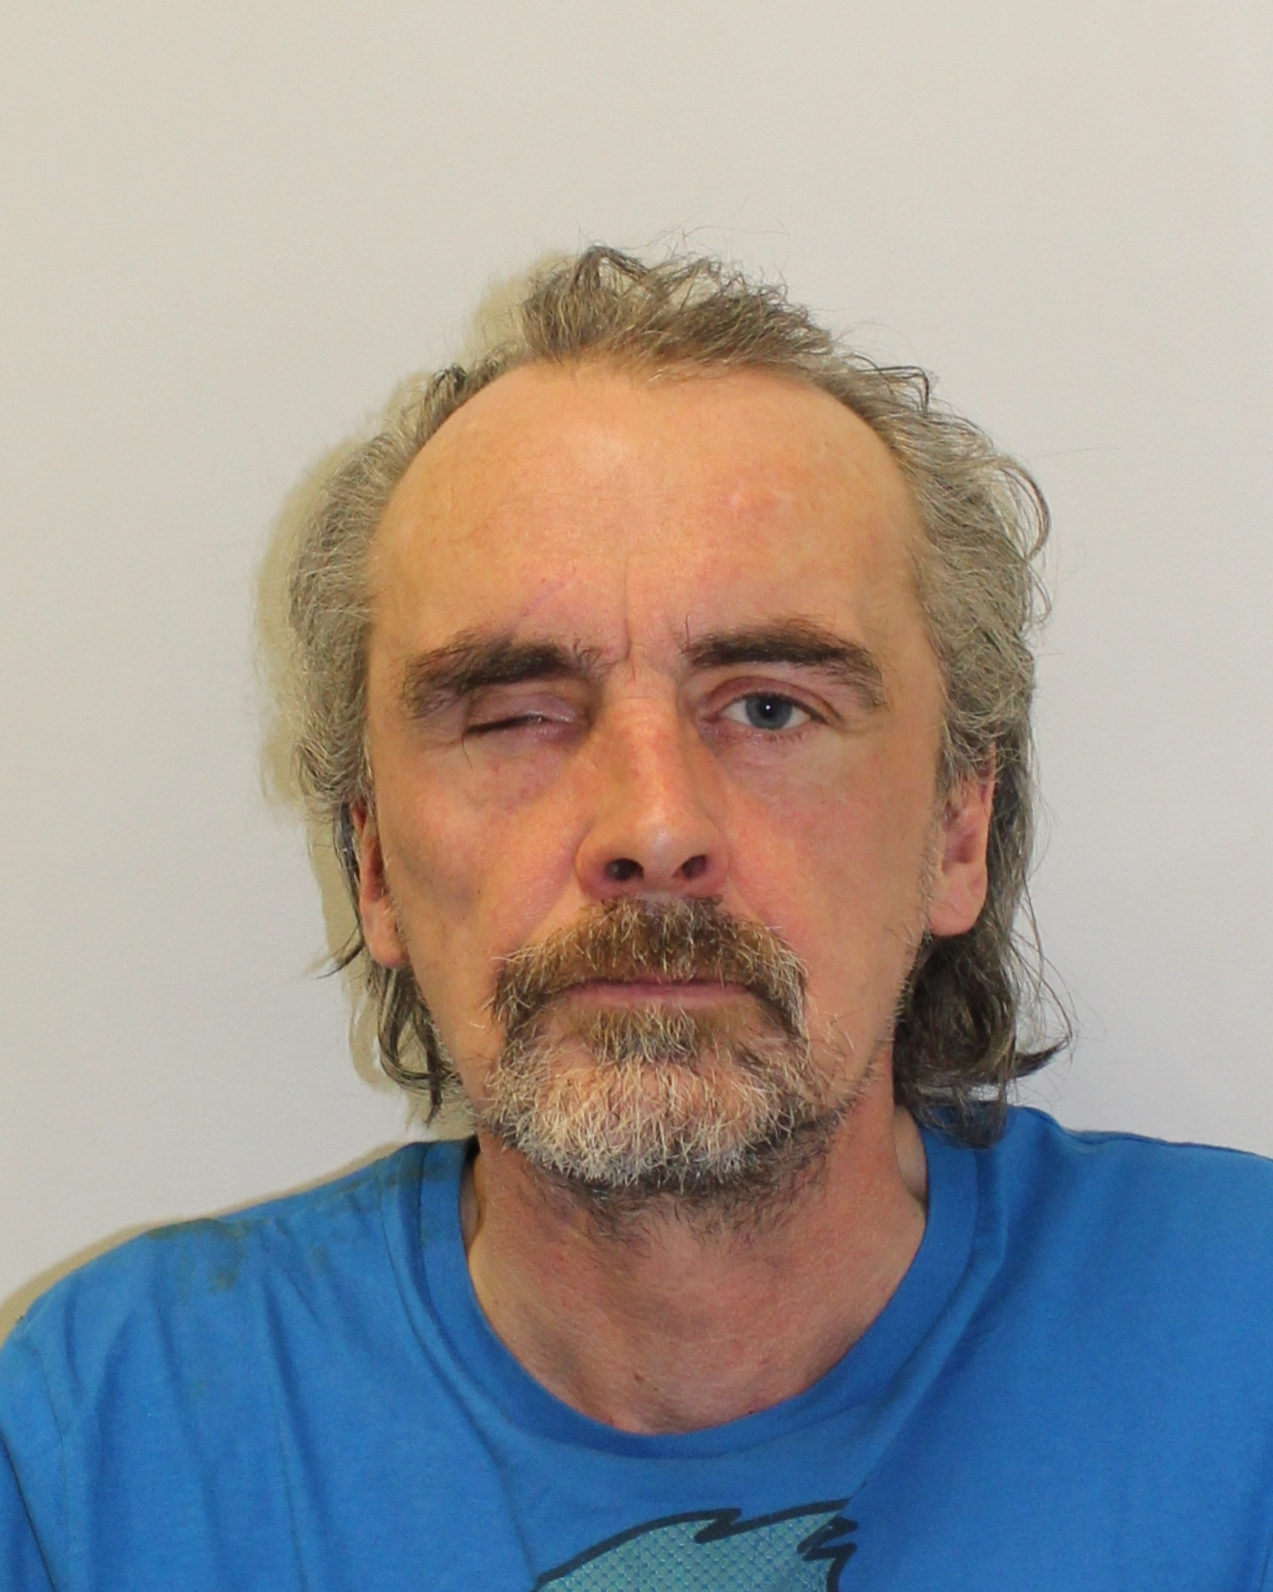 Peter Goold, 50, from East Finchley is wanted for questioning by Colindale CID officers for Burglary. Ref 01SX/665916